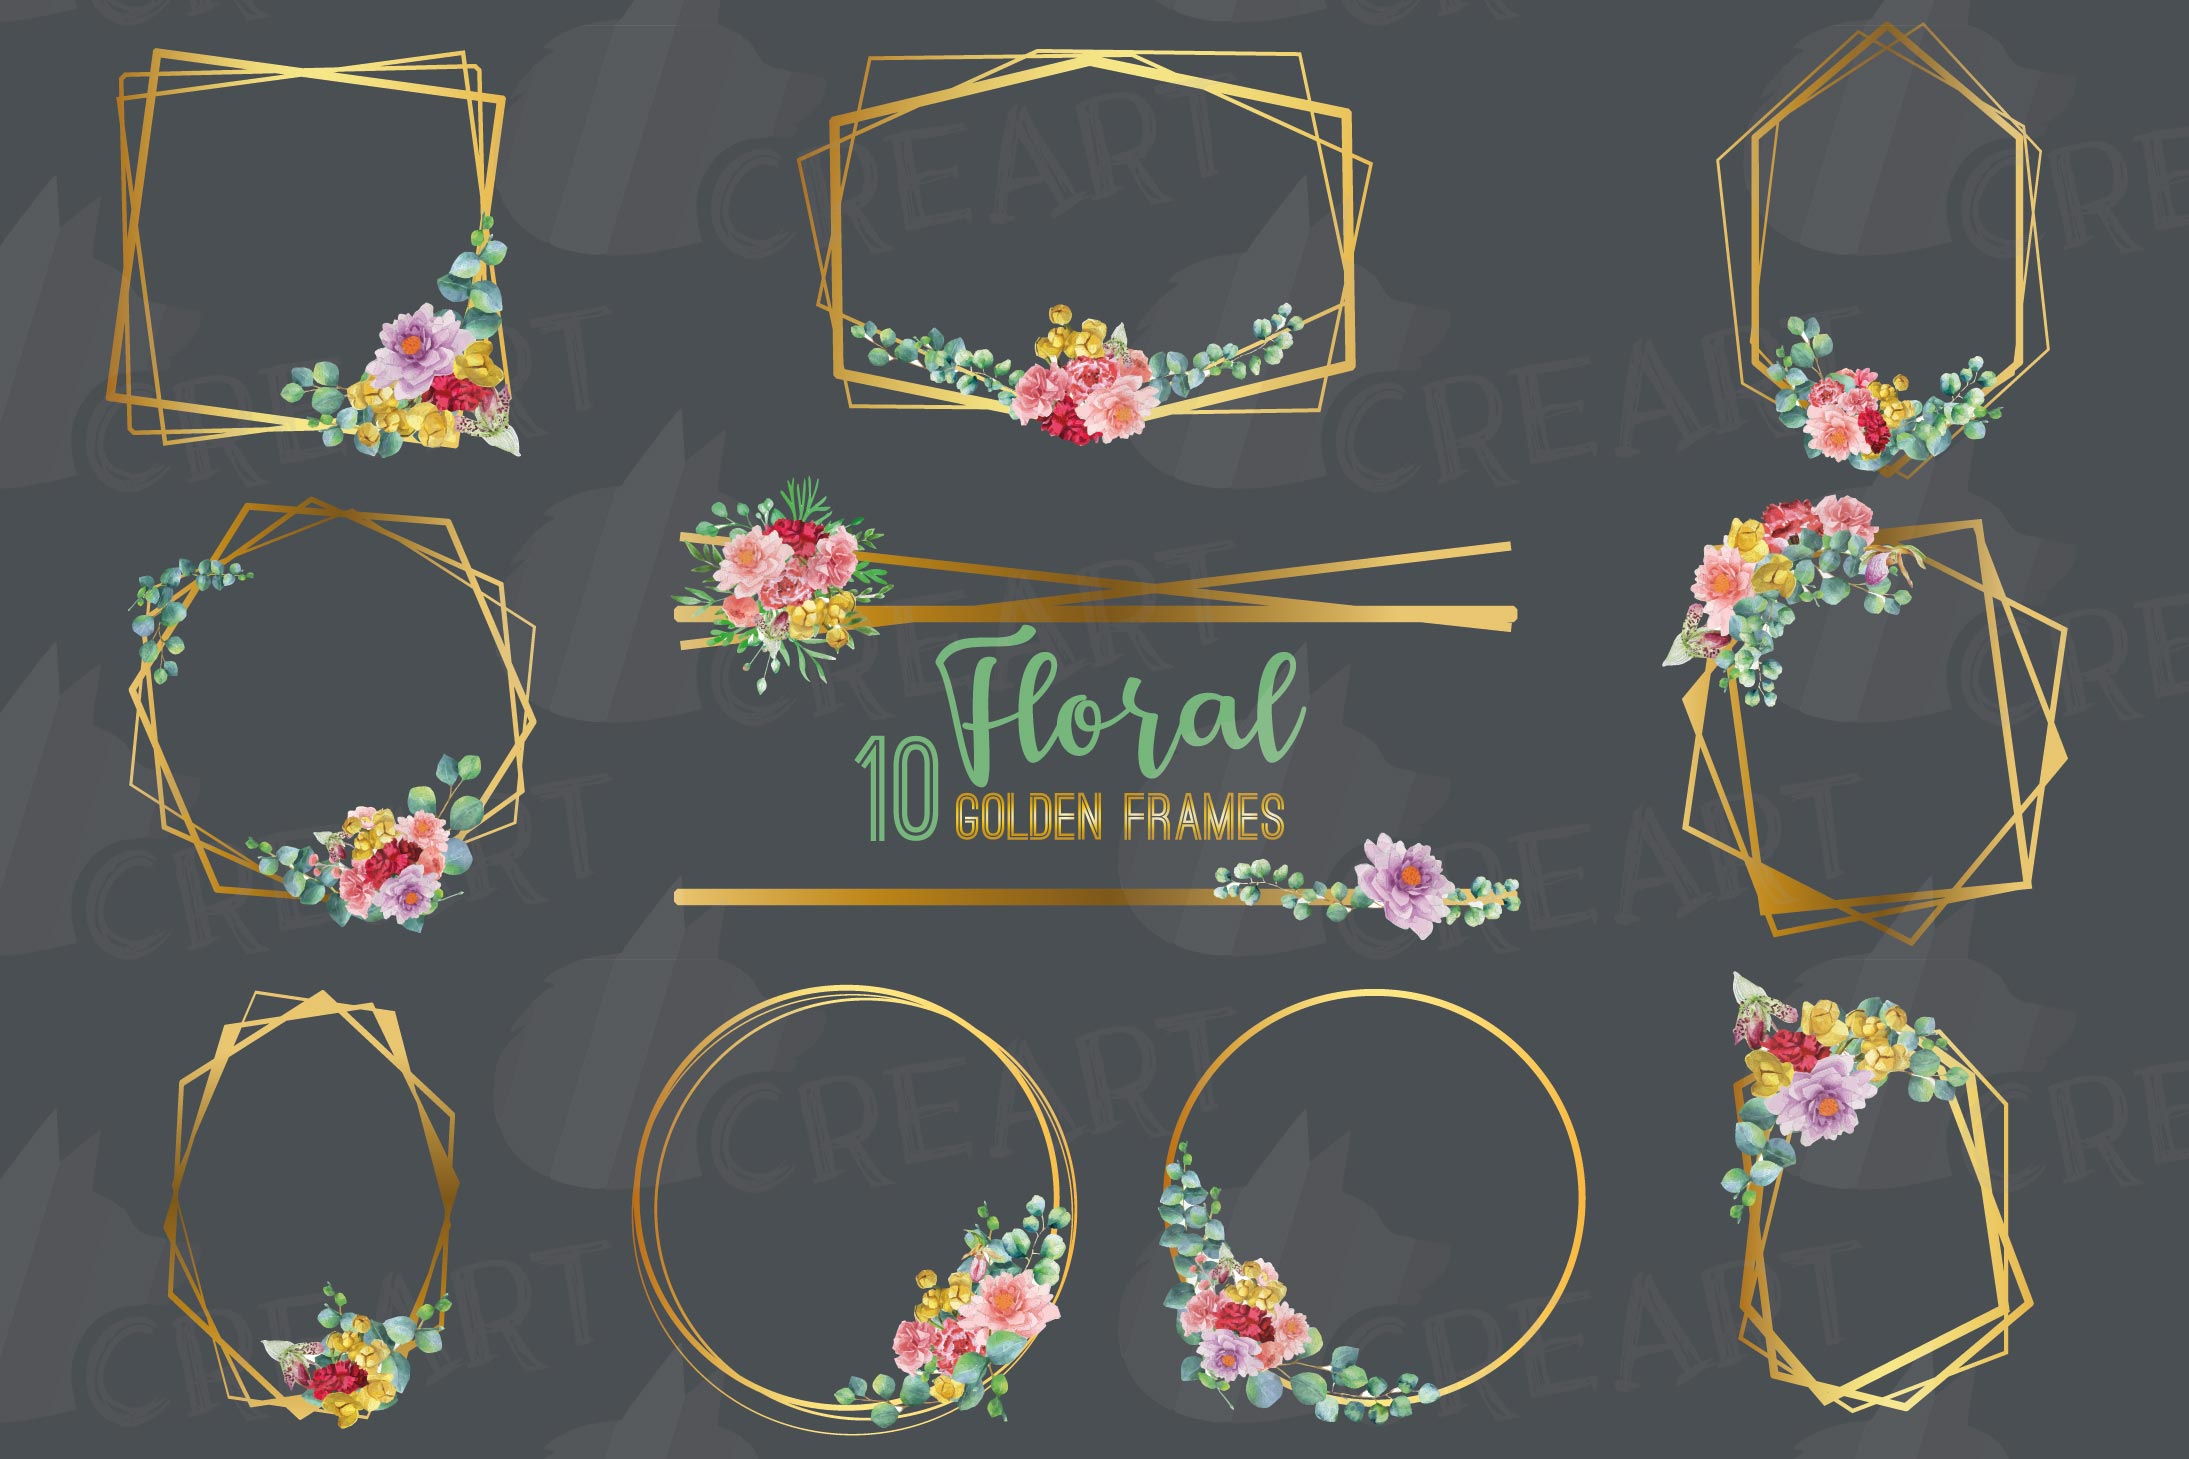 Watercolor floral golden frames and borders clip art pack example image 3